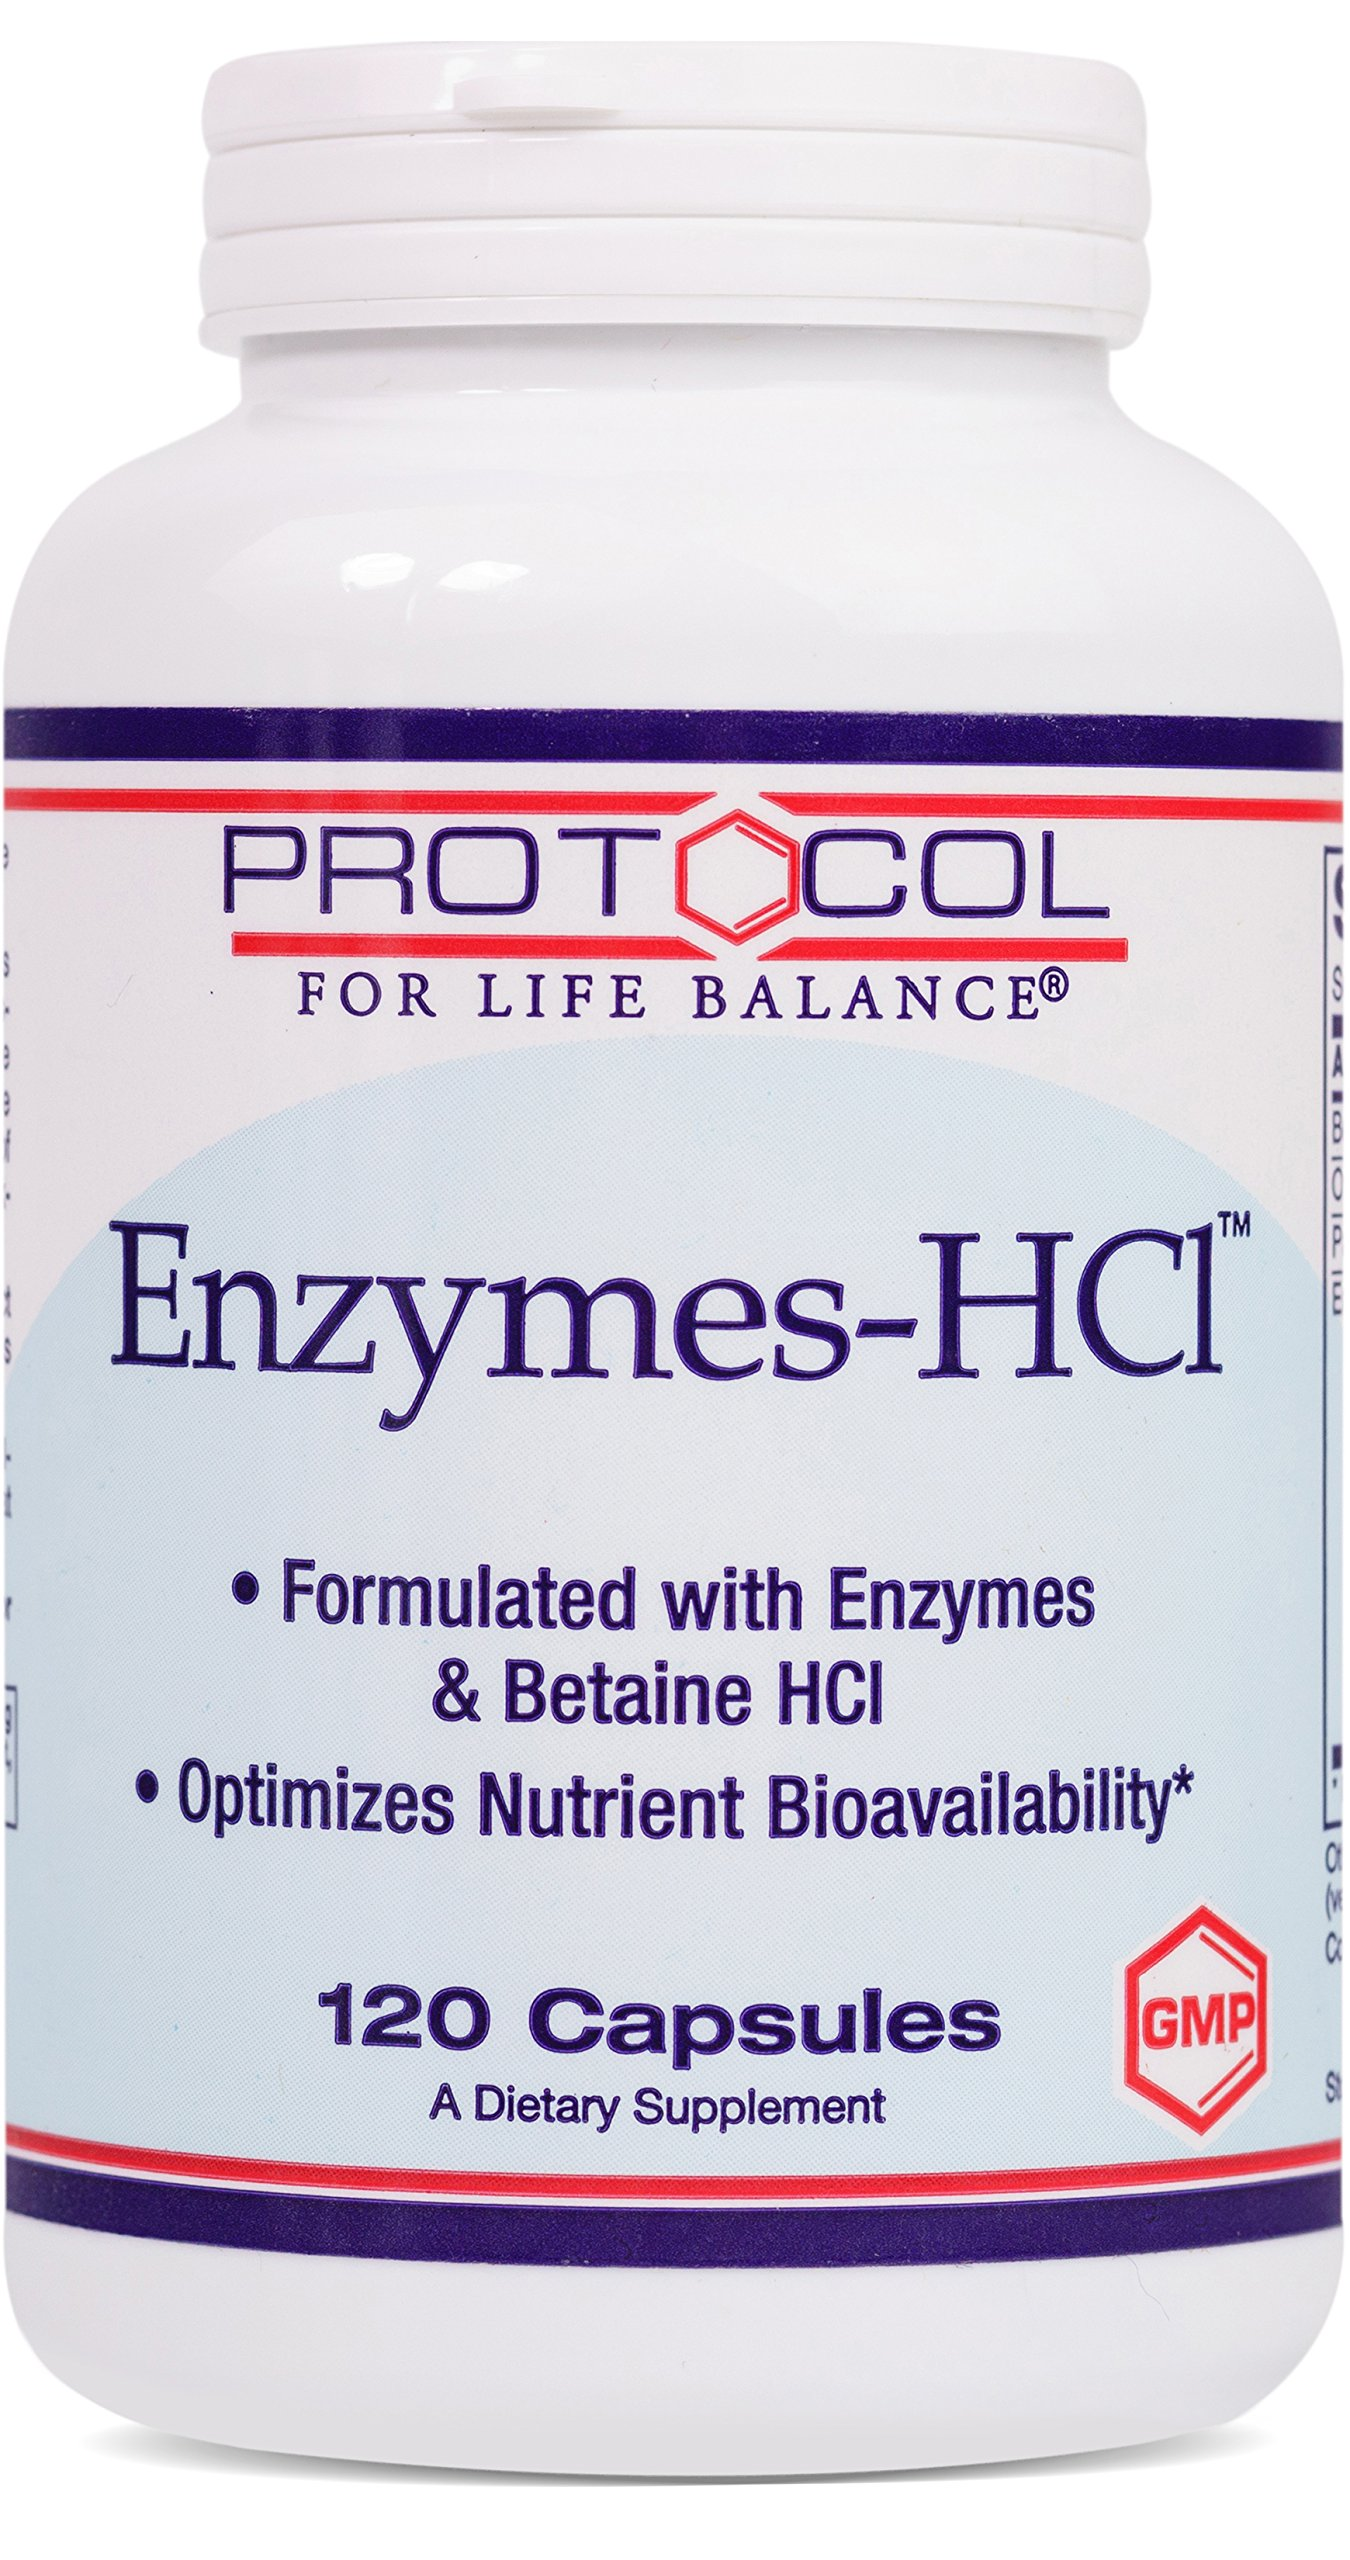 Protocol For Life Balance - Enzymes-HC1 - Formulated with Enzymes & Betaine HCI to Optimize Nutrient Bioavailability - 120 Capsules